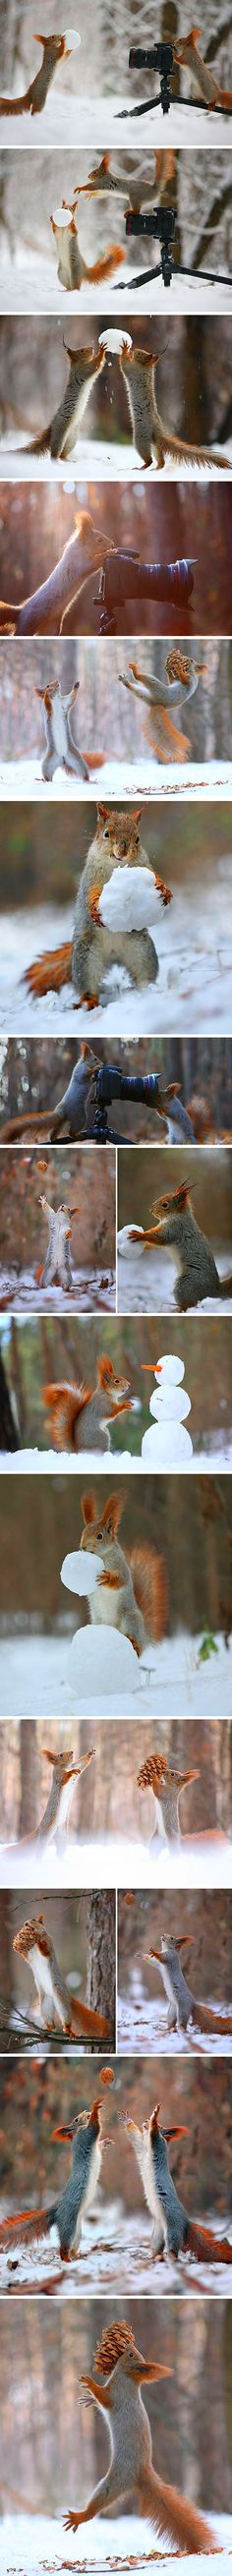 Talented Russian nature photographer Vadim Trunov has had close encounters with squirrels before, but this is the first time we've seen his photos of squirrels playing or shooting photos of each other! The photographer recently published some photos he's Animals And Pets, Baby Animals, Funny Animals, Cute Animals, Funny Animal Pictures, Cute Pictures, Beautiful Creatures, Animals Beautiful, Photo Animaliere